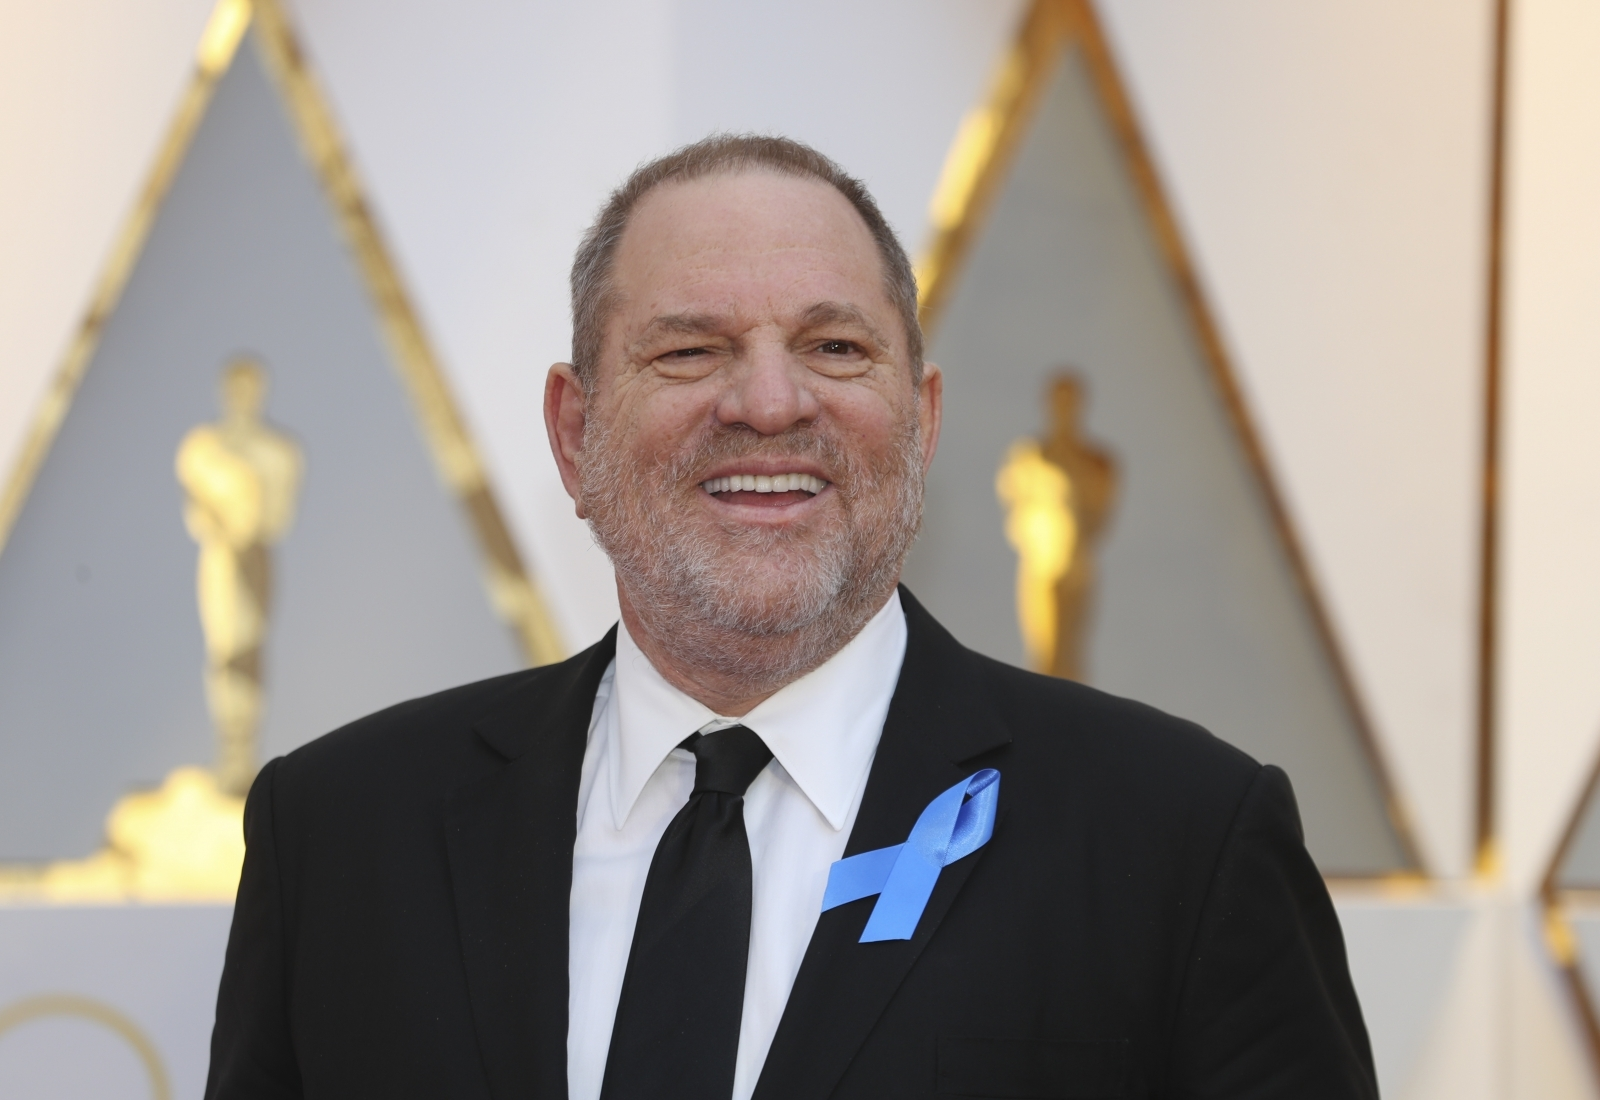 Harvey Weinstein Lawyers Up for Bombshell New York Times, New Yorker Stories